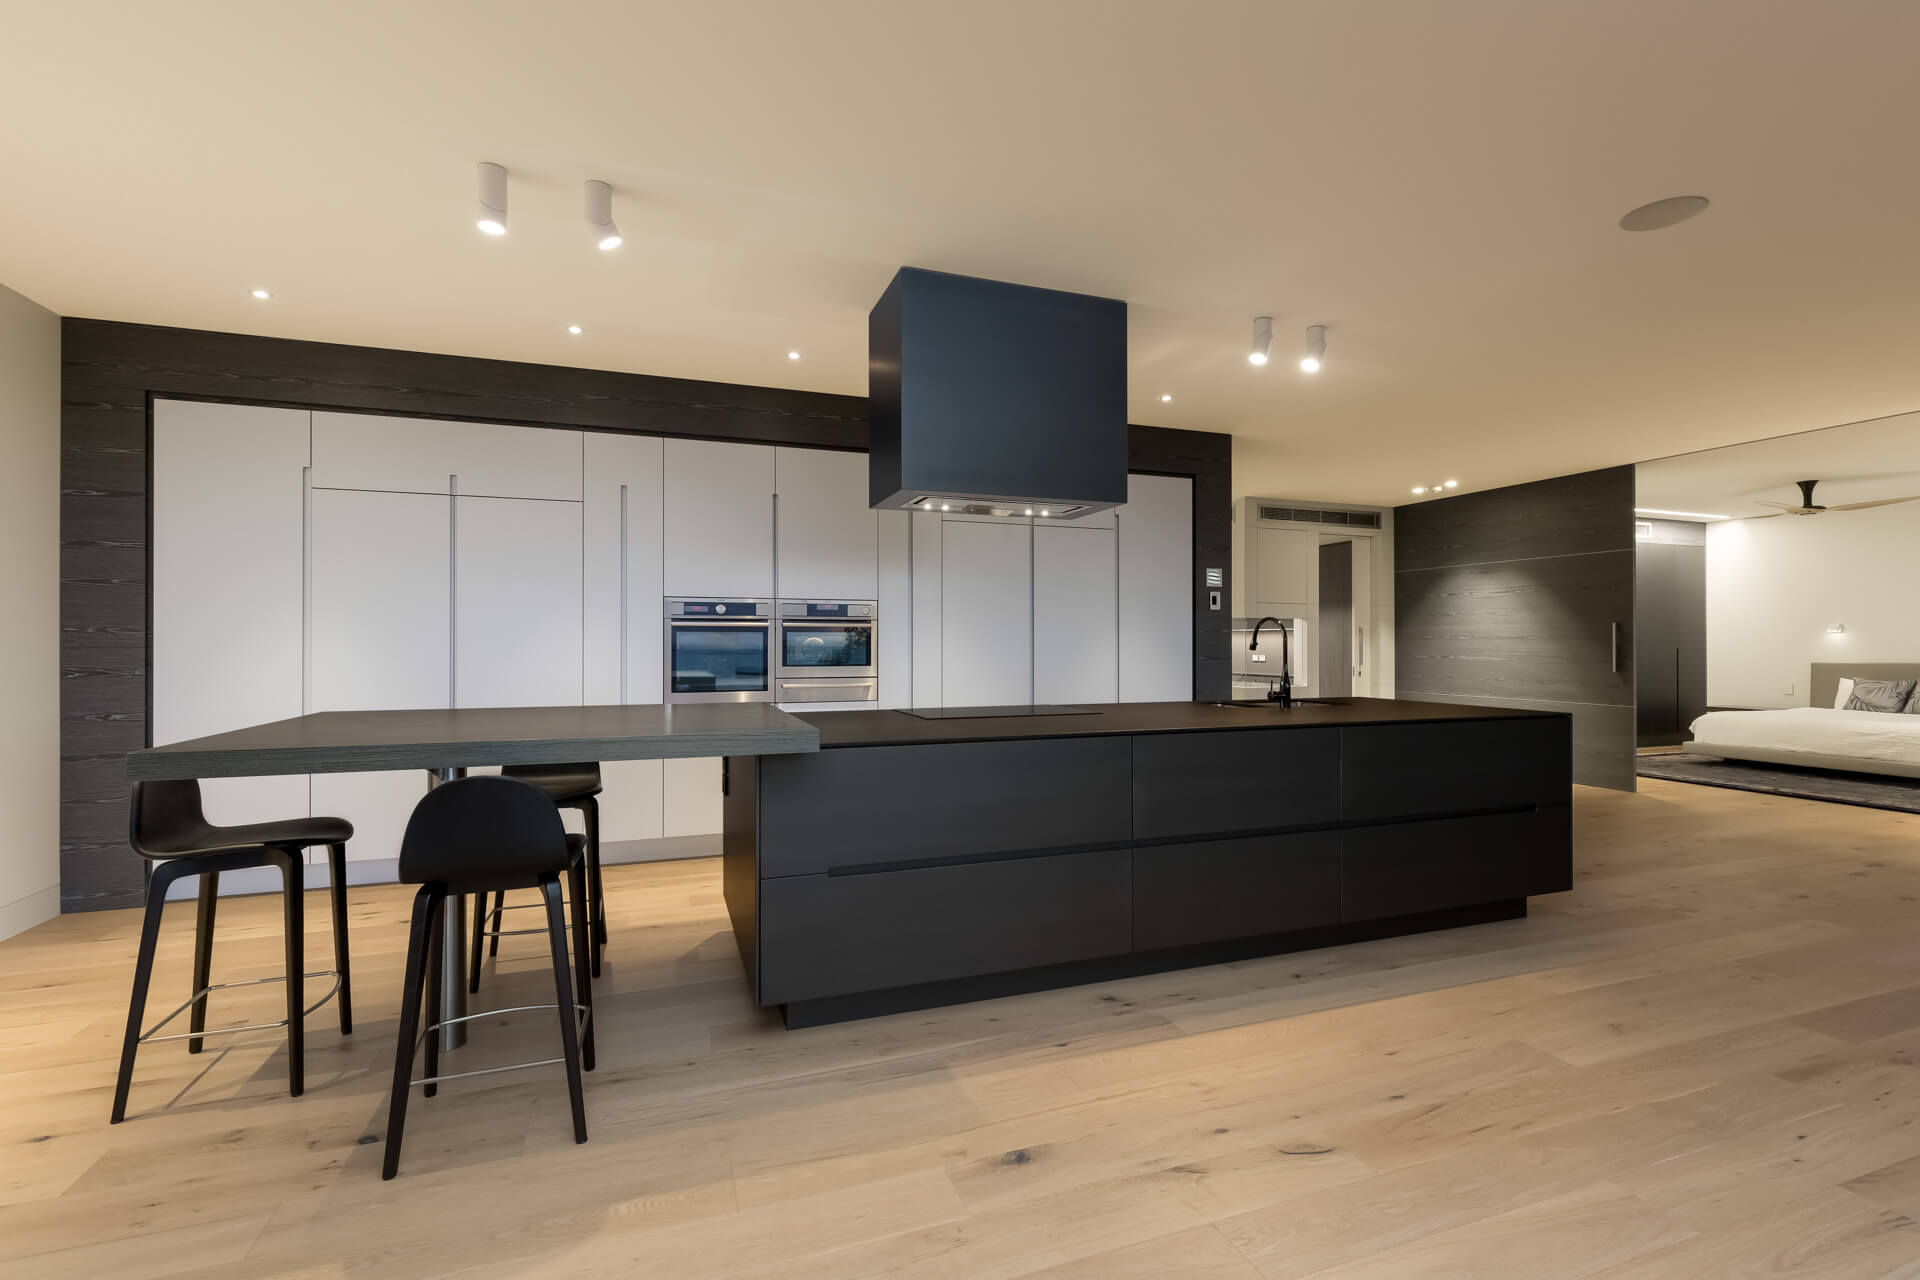 Custom design kitchen with grey cabinetry and dark brown breakfast bar kitchen island on timber flooring looking in to master bedroom with oversized sliding door in Brighton bayside melbourne Architectural Photography Roger Thompson Photography